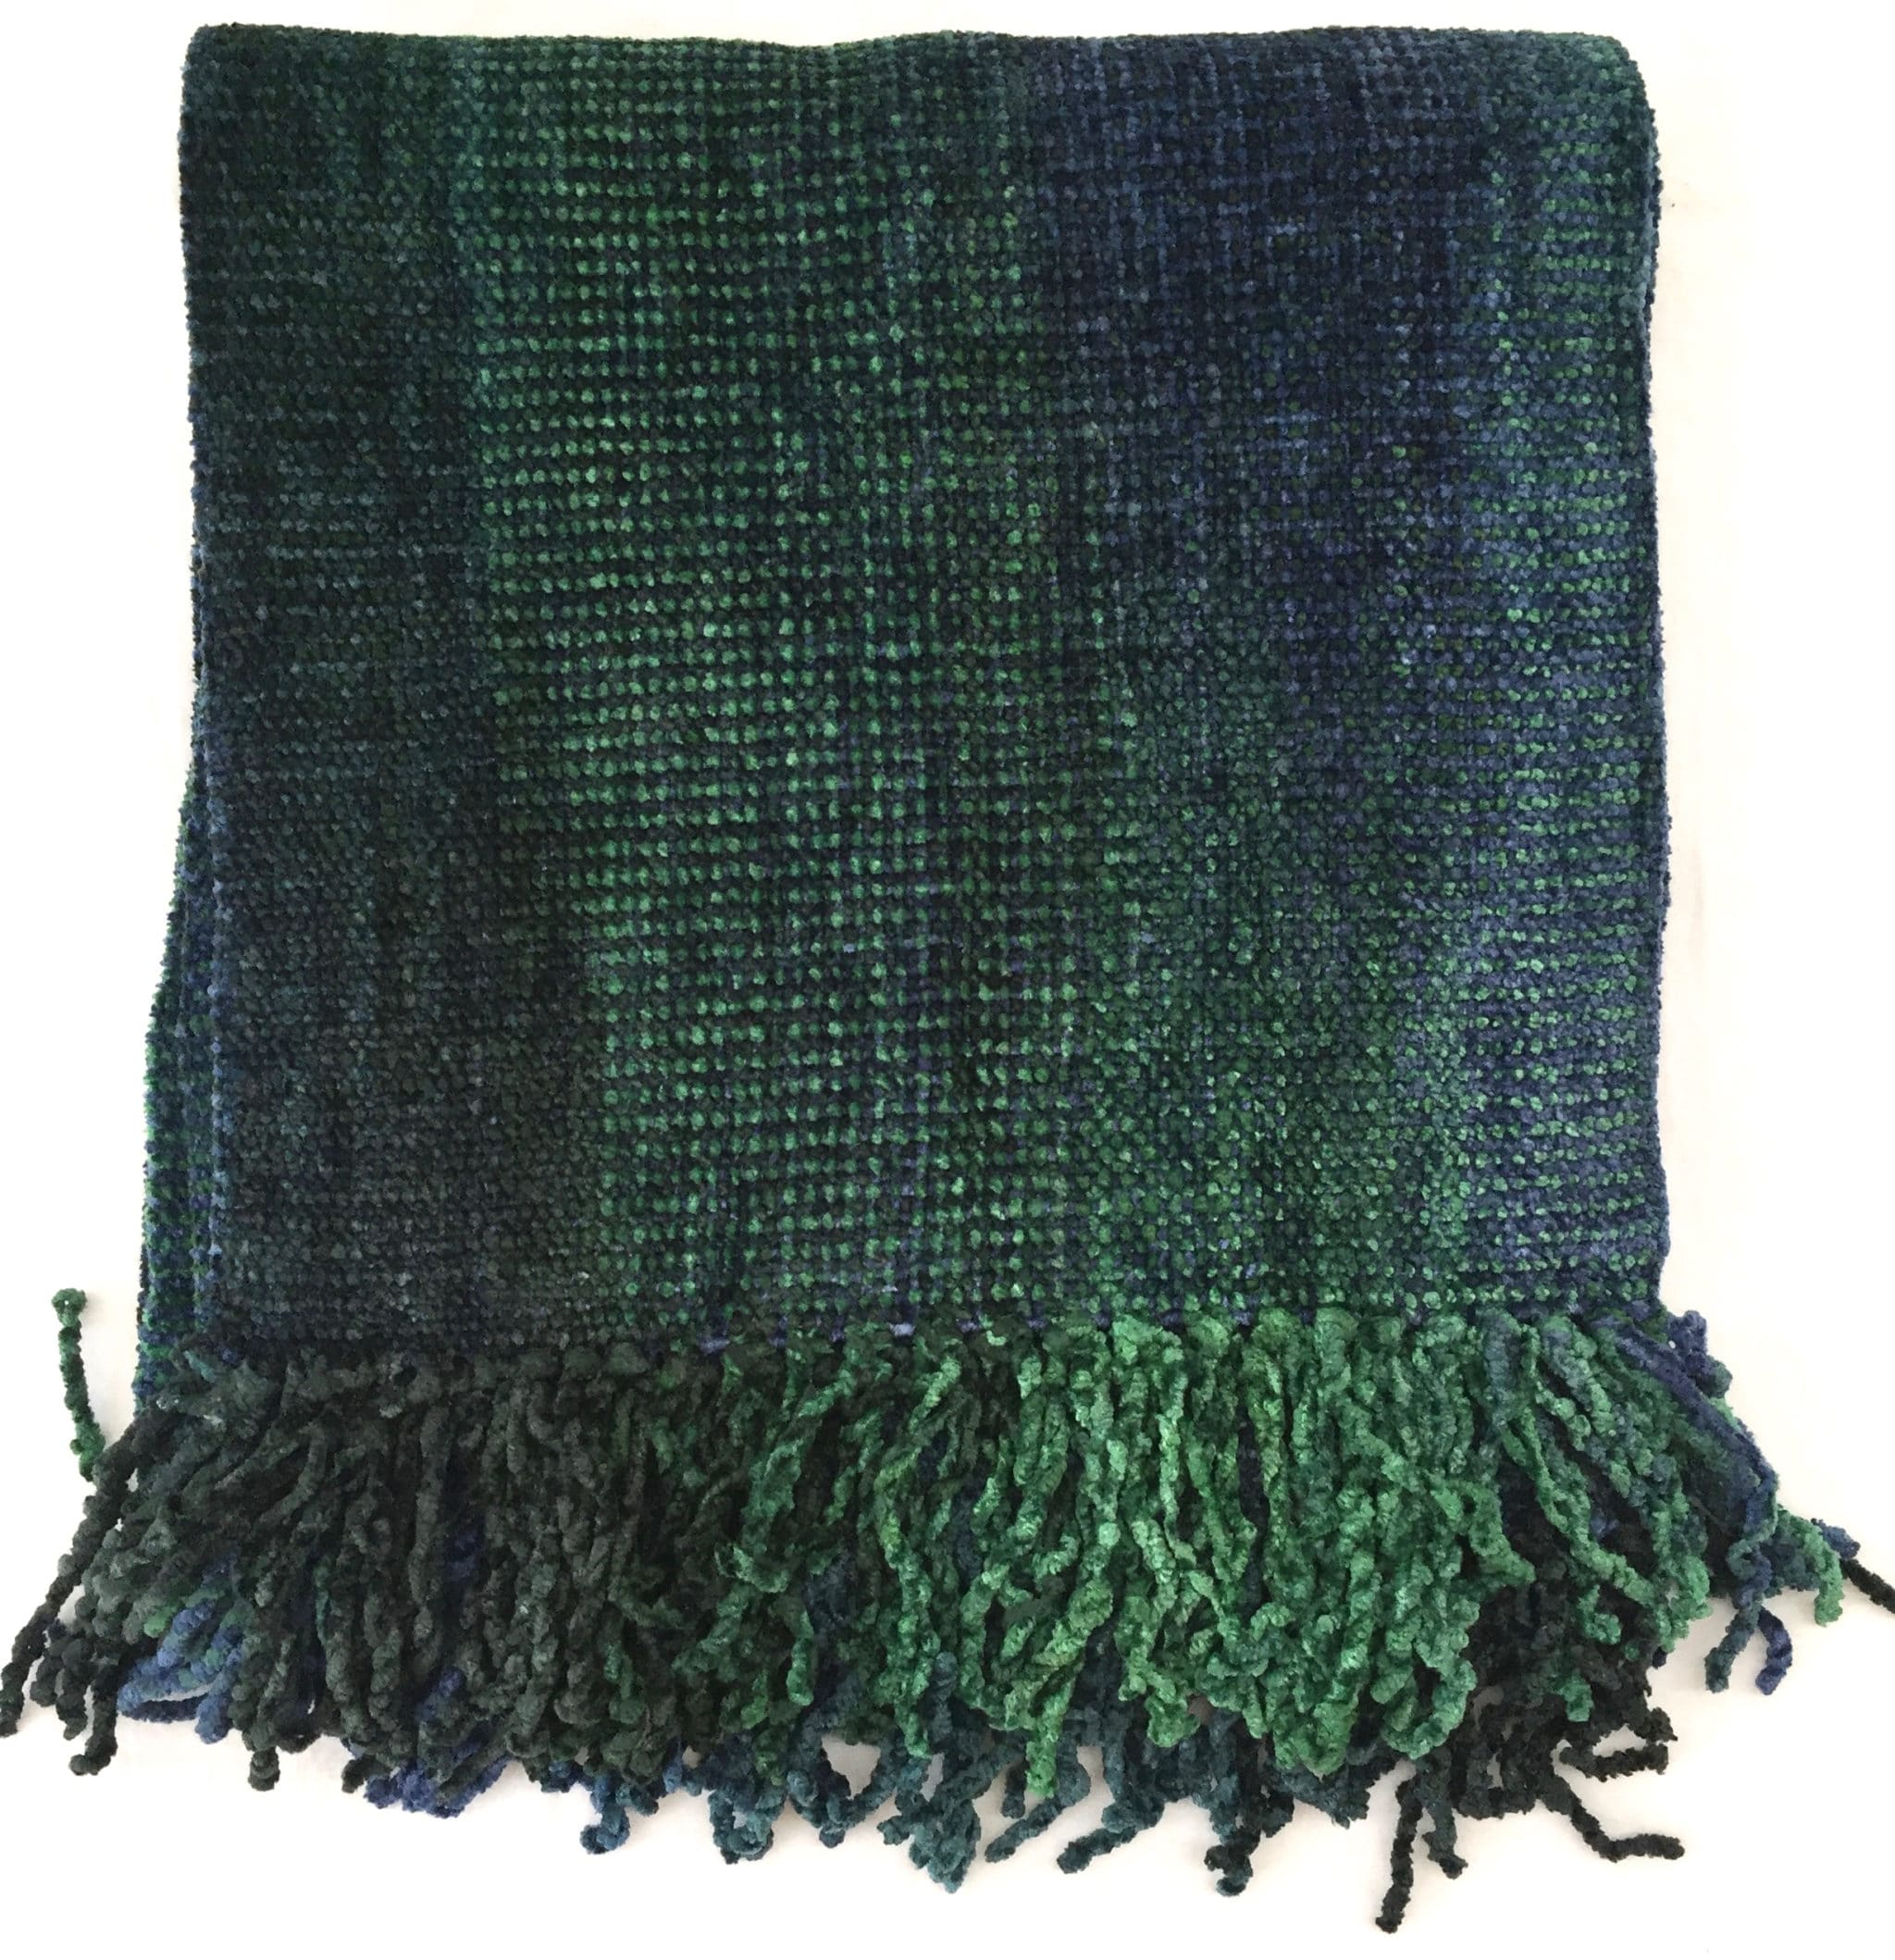 Emerald and Sapphire (Green and Blue) - Bamboo Chenille Handwoven Scarf 8 x 68